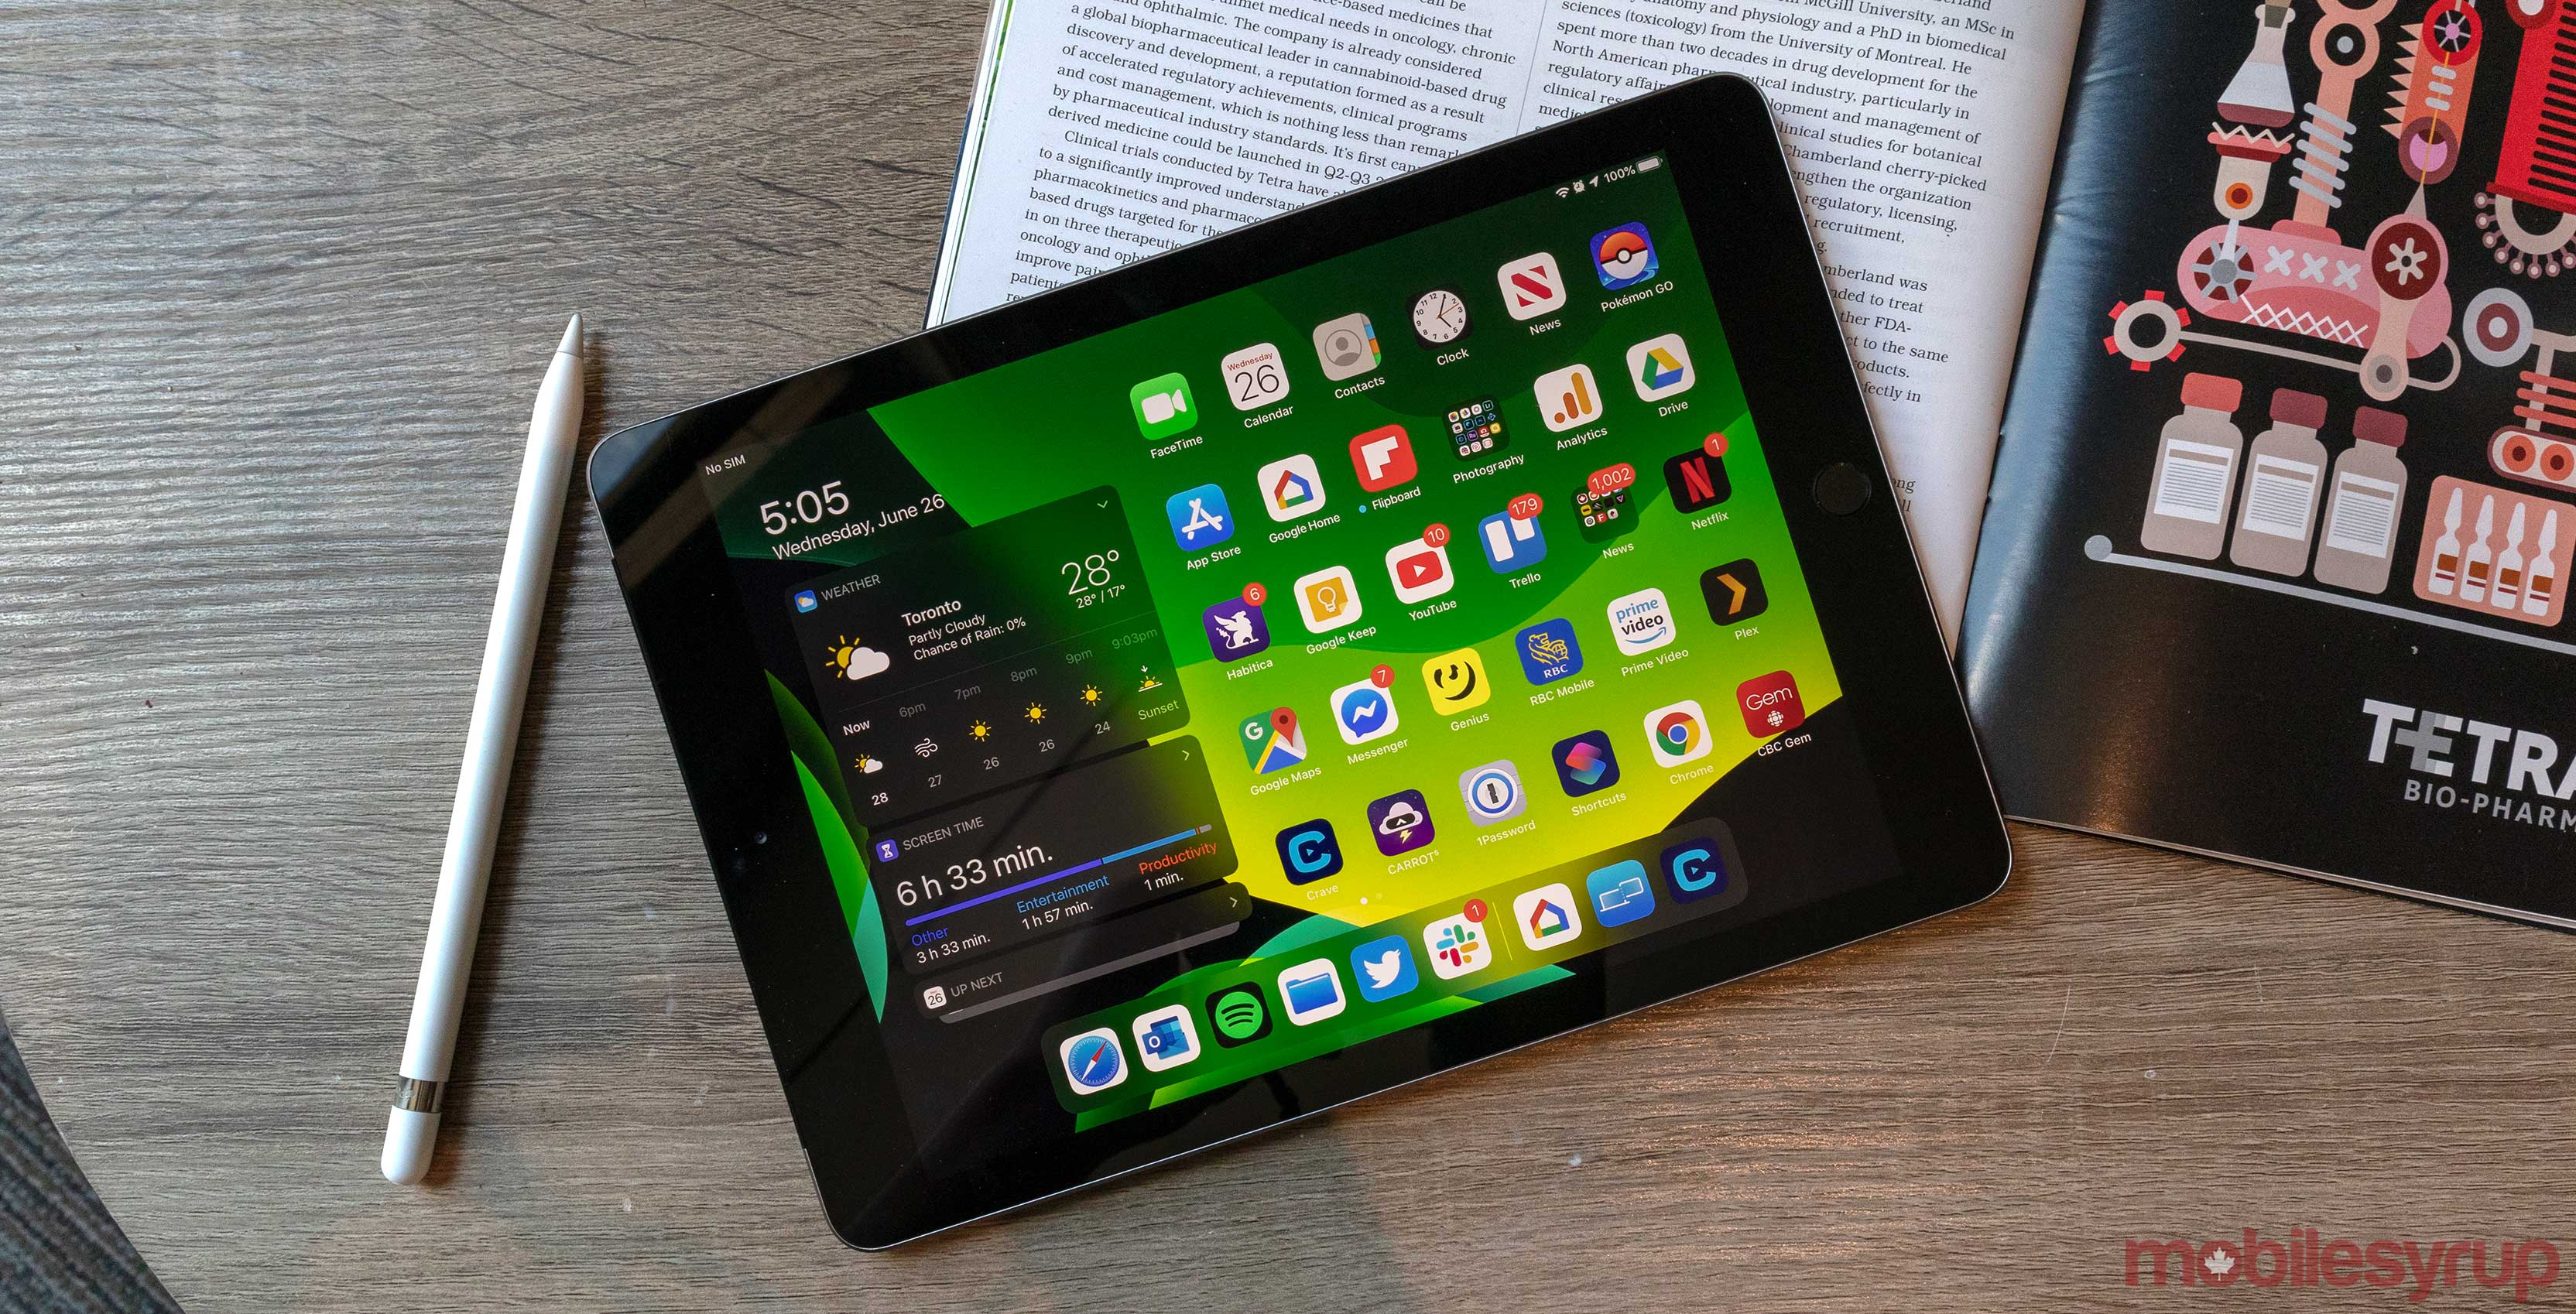 Filings hint Apple could be planning to release new iPads